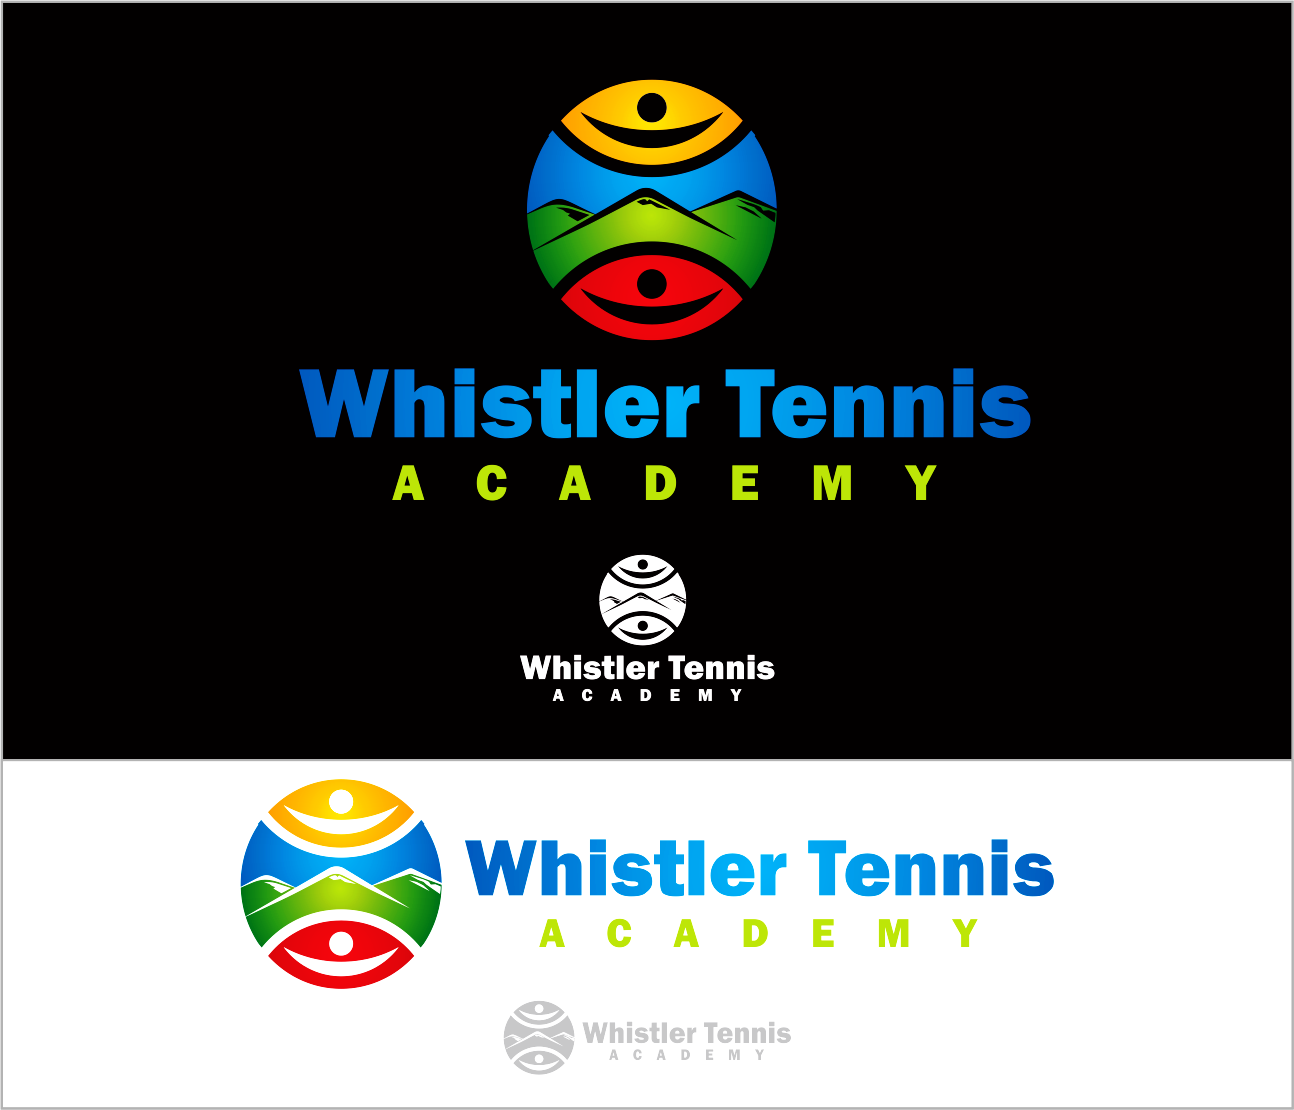 Logo Design by Armada Jamaluddin - Entry No. 111 in the Logo Design Contest Imaginative Logo Design for Whistler Tennis Academy.